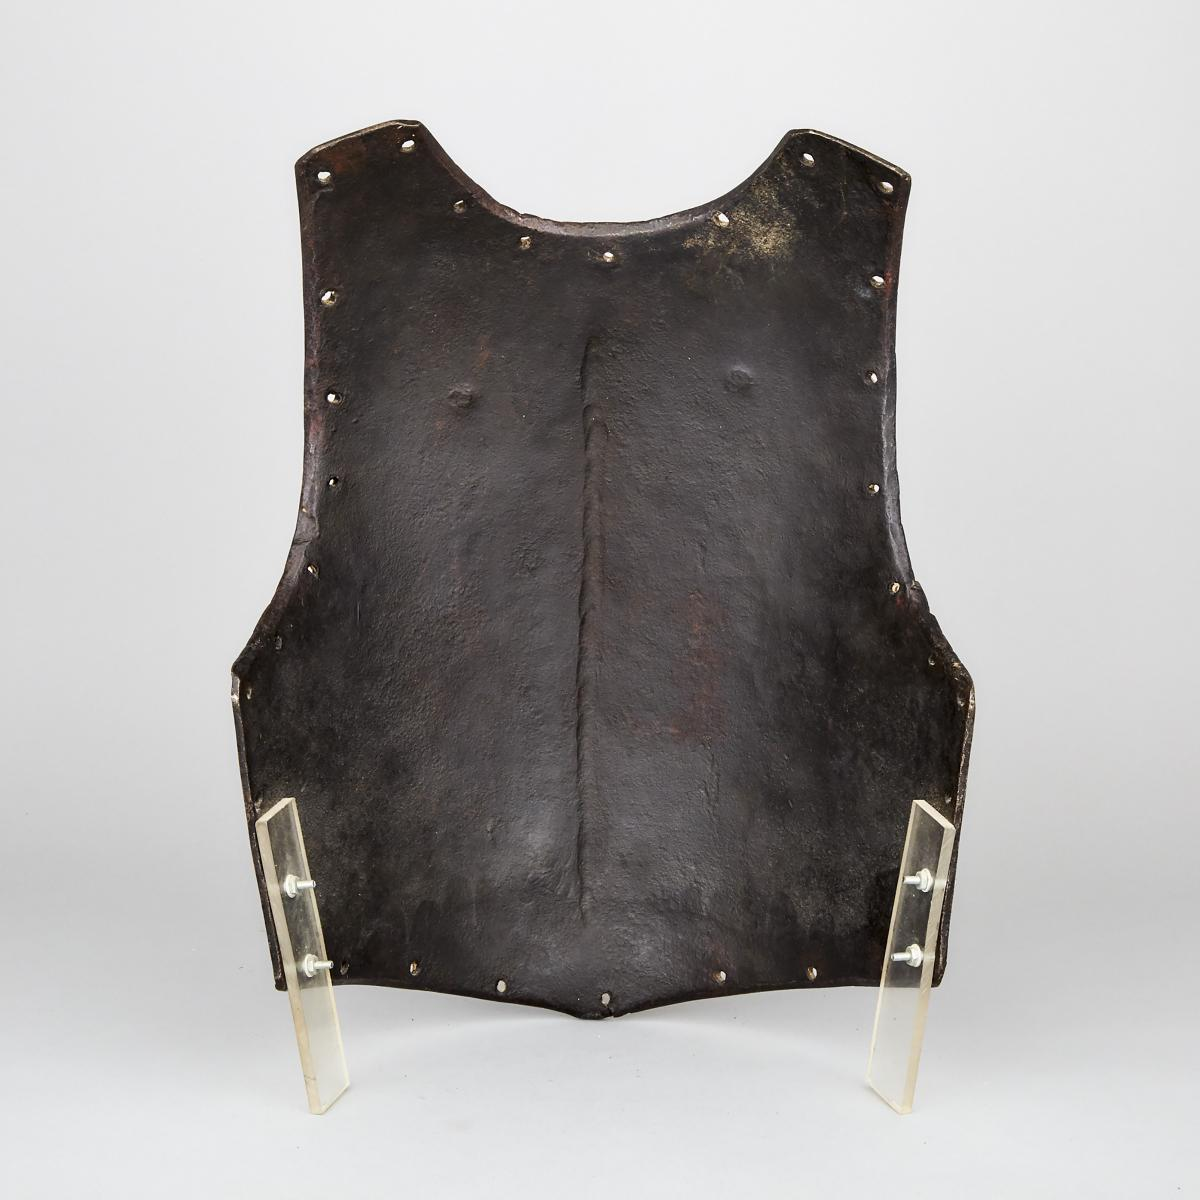 North European Breastplate, early/mid 17th century, height 19 in — 48.3 cm - Image 2 of 2